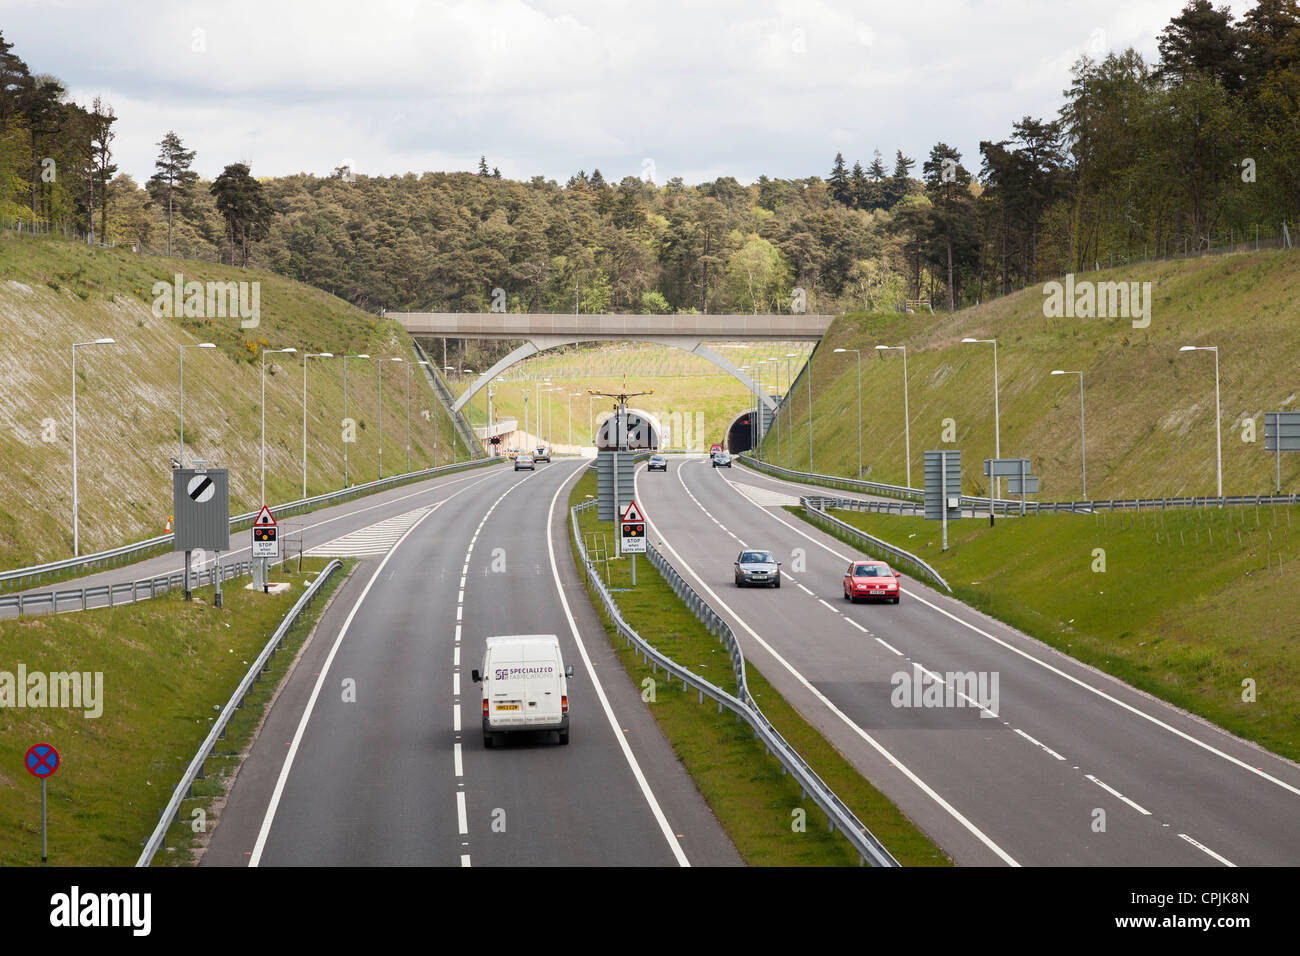 Southern dual carridgeway entrance to hindhead road tunnel. - Stock Image